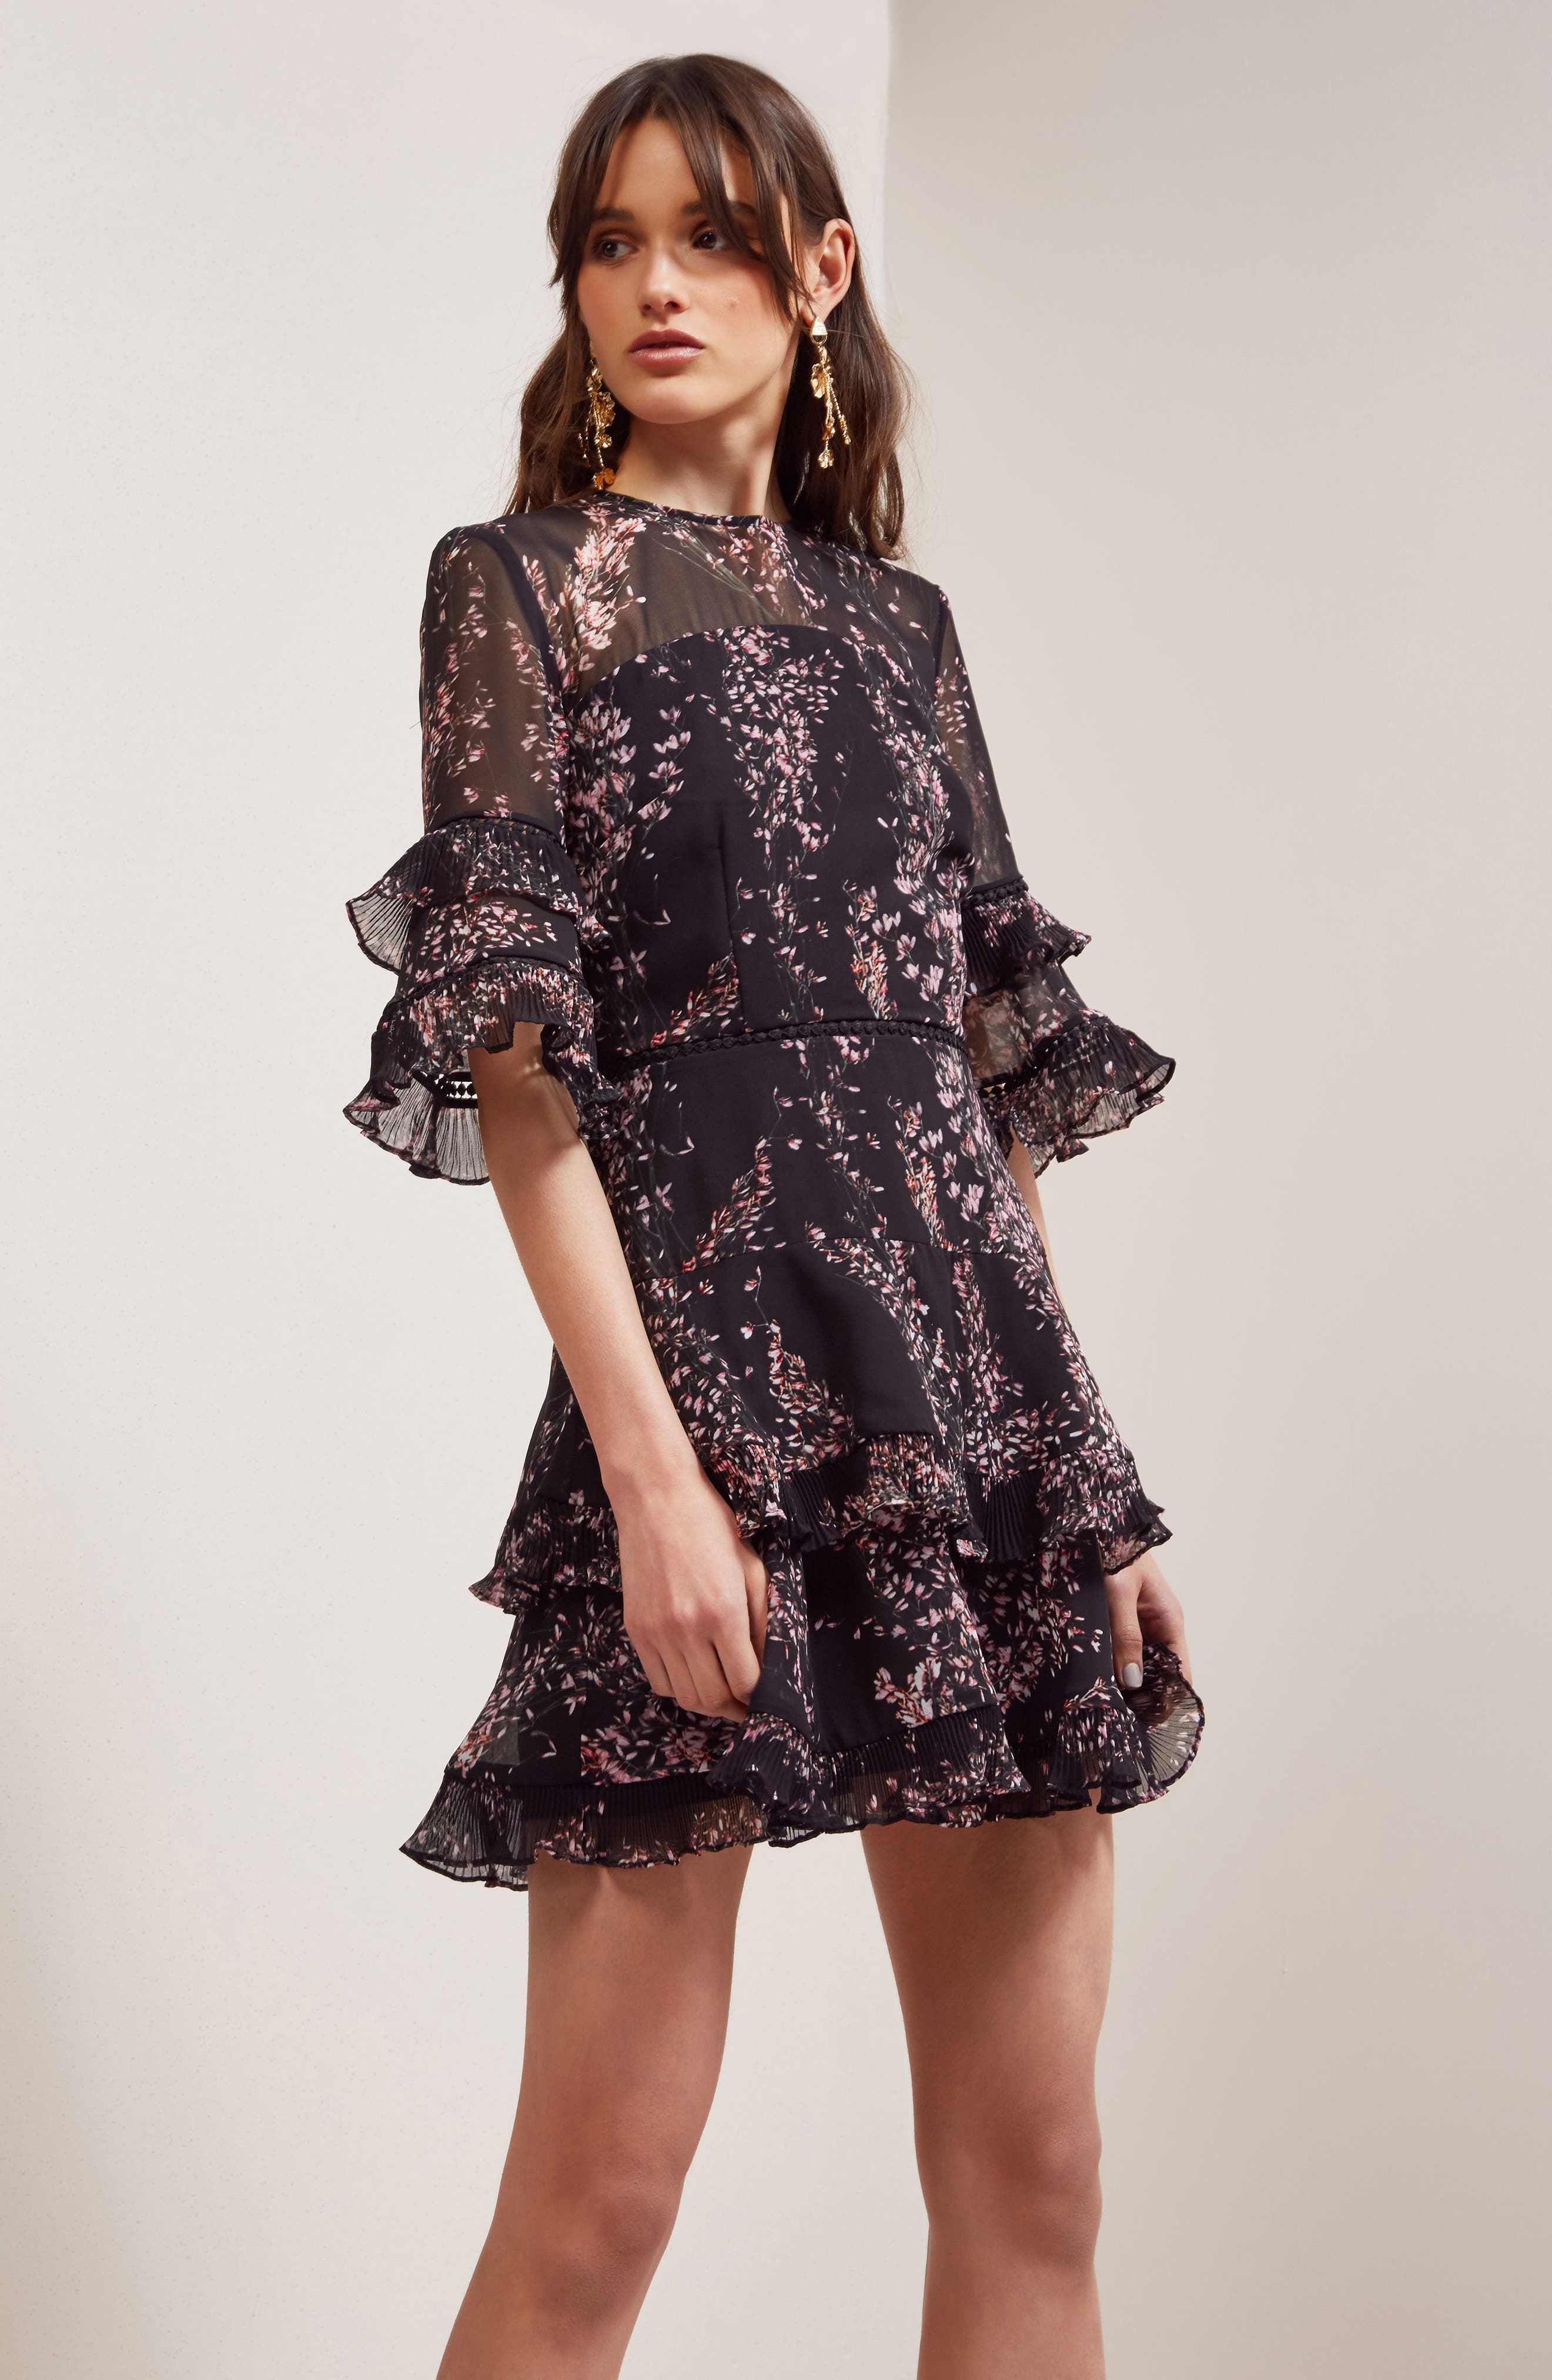 Light Up Ruffle Minidress,                             Alternate thumbnail 7, color,                             Black Wildflower Floral